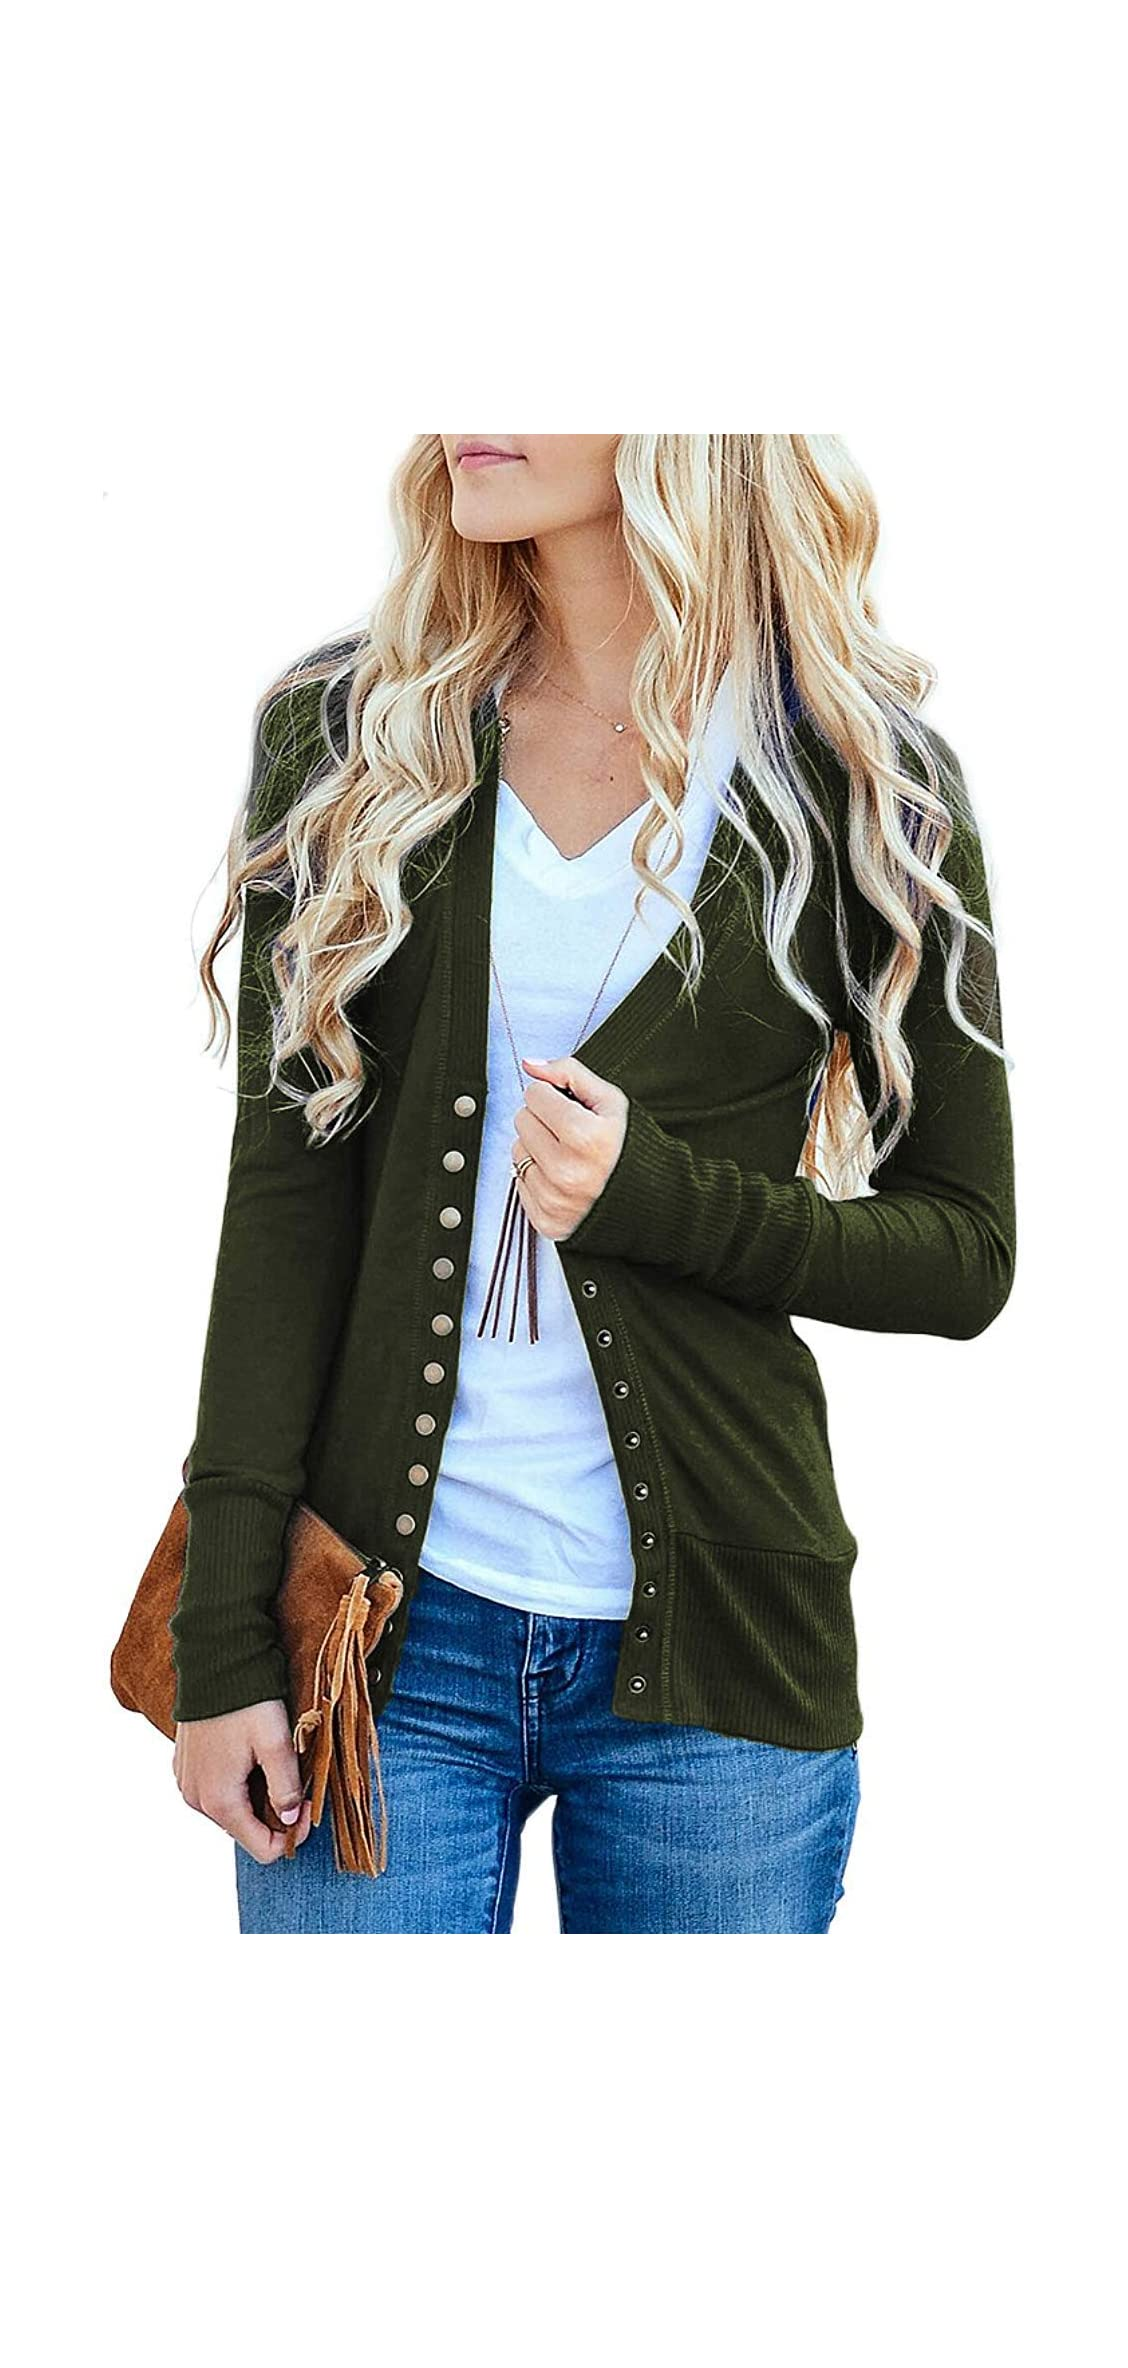 Women's V-neck Solid Button Tops Long Sleeve Knit